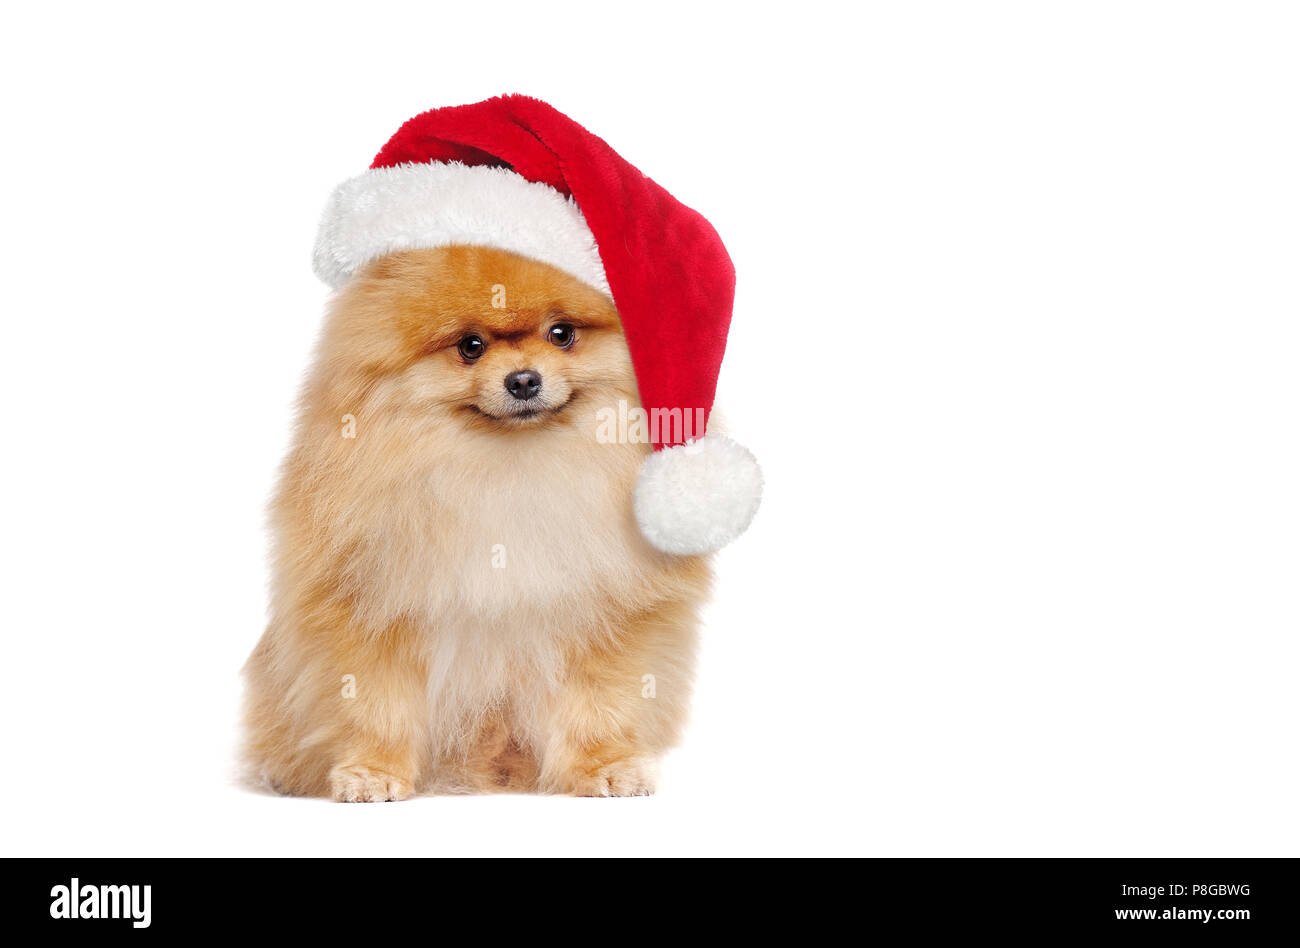 Full length portrait of a sitting red pomeranian spitz wearing santa hat - Stock Image